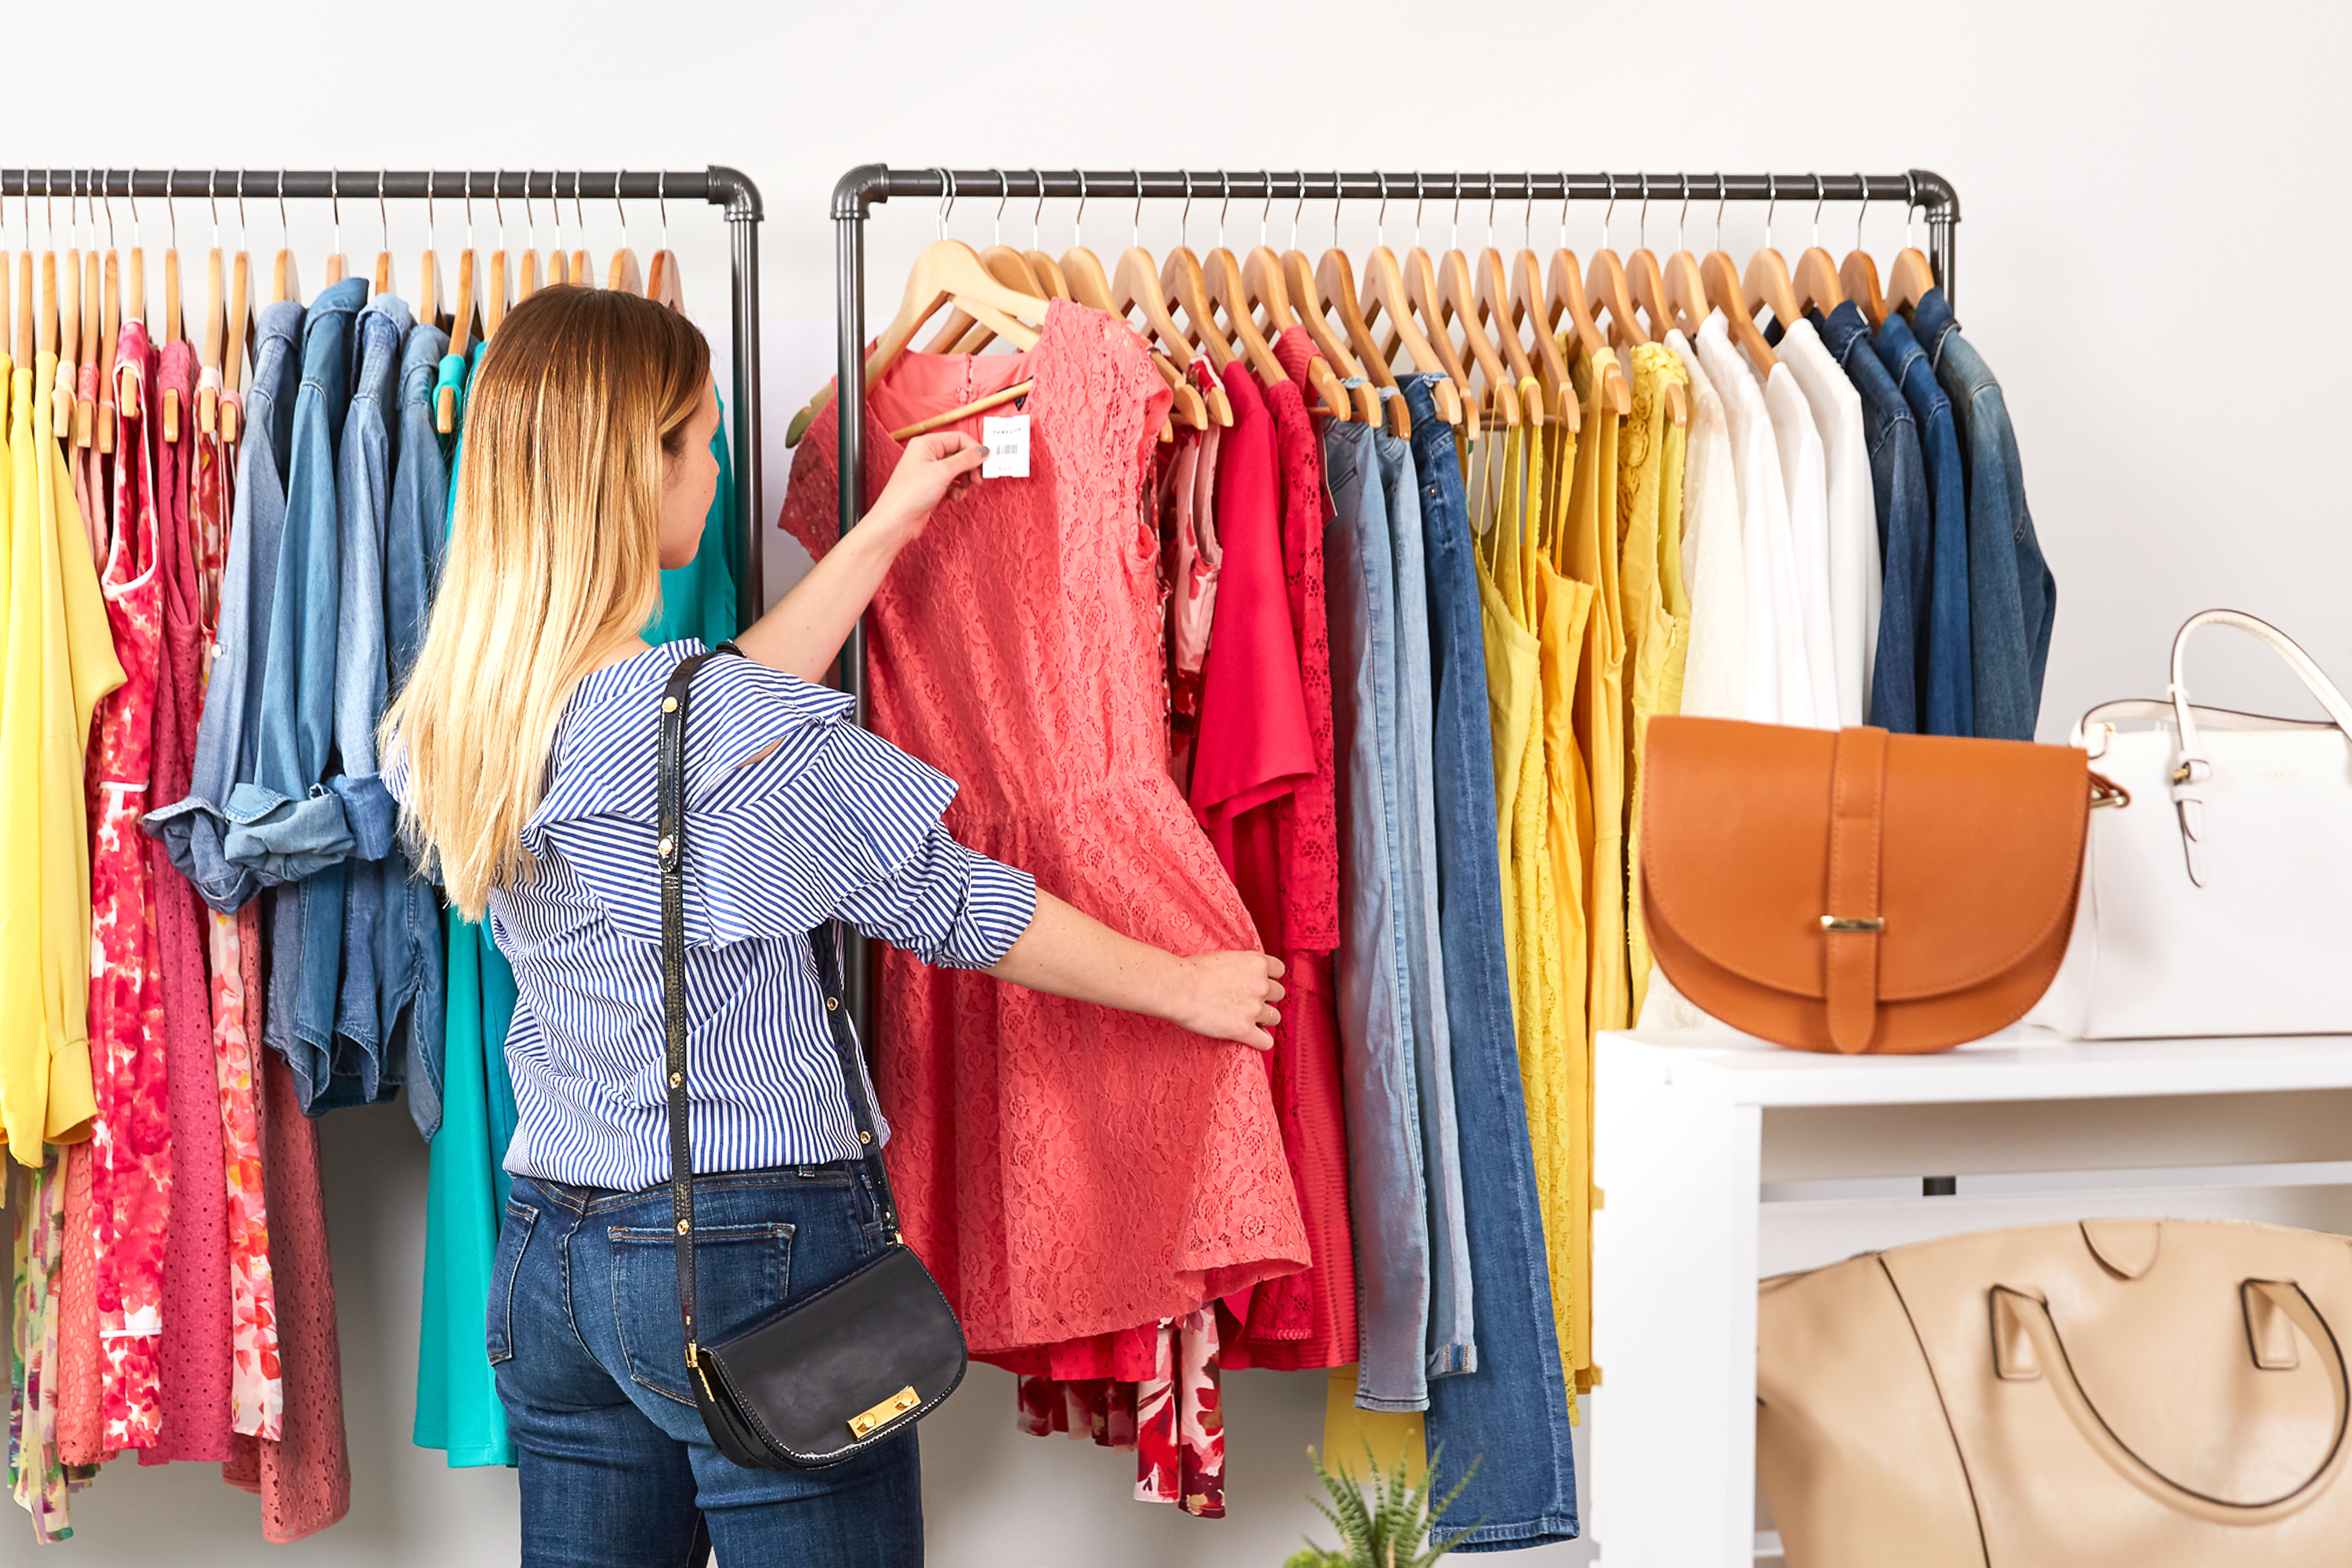 Big News Thredup Launches Retail Store With A Selection As Big As